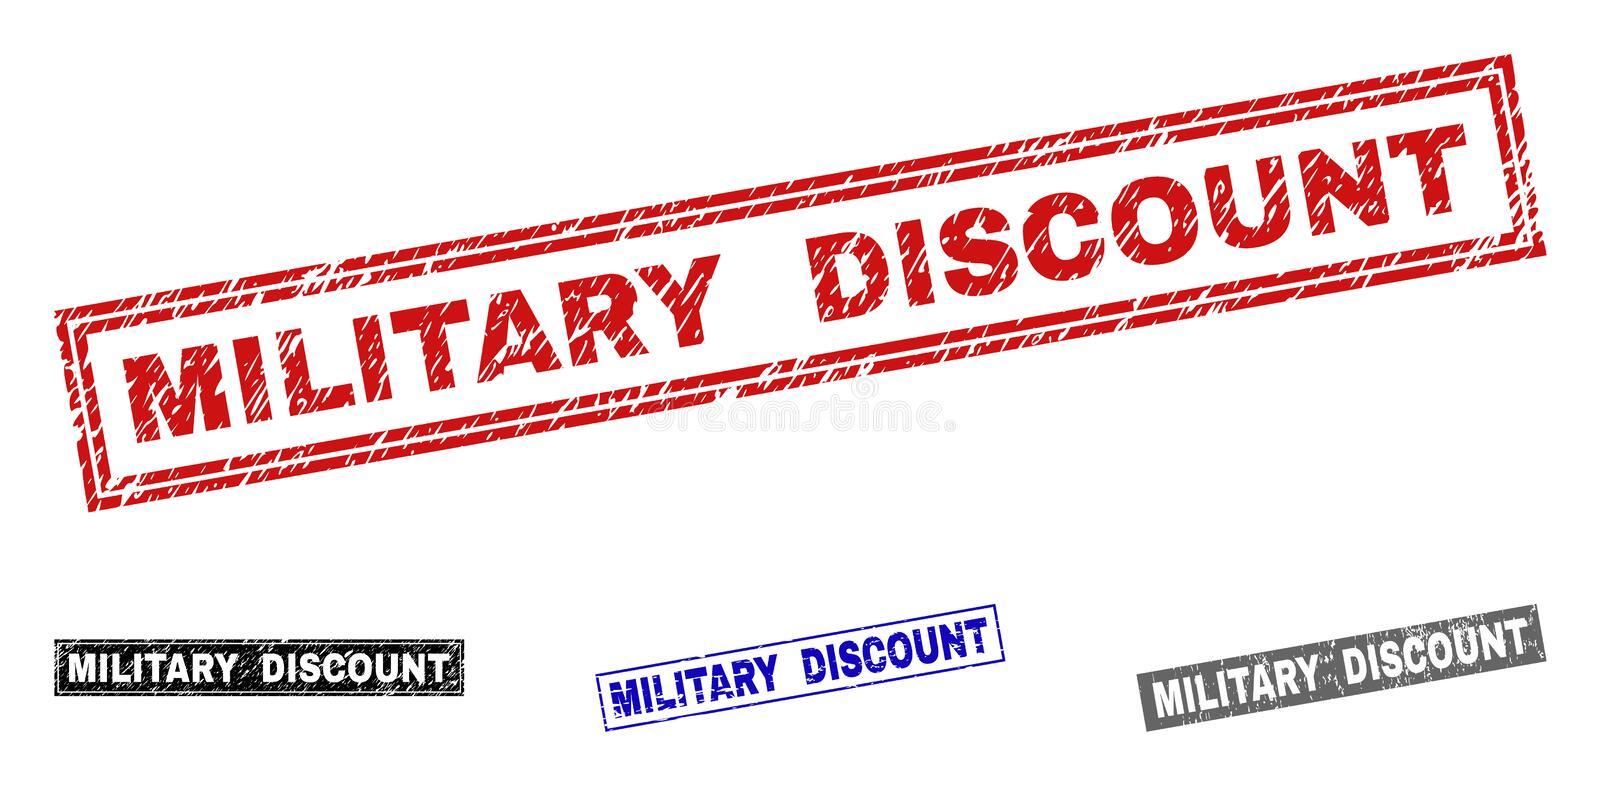 Grunge MILITARY DISCOUNT Textured Rectangle Watermarks vector illustration